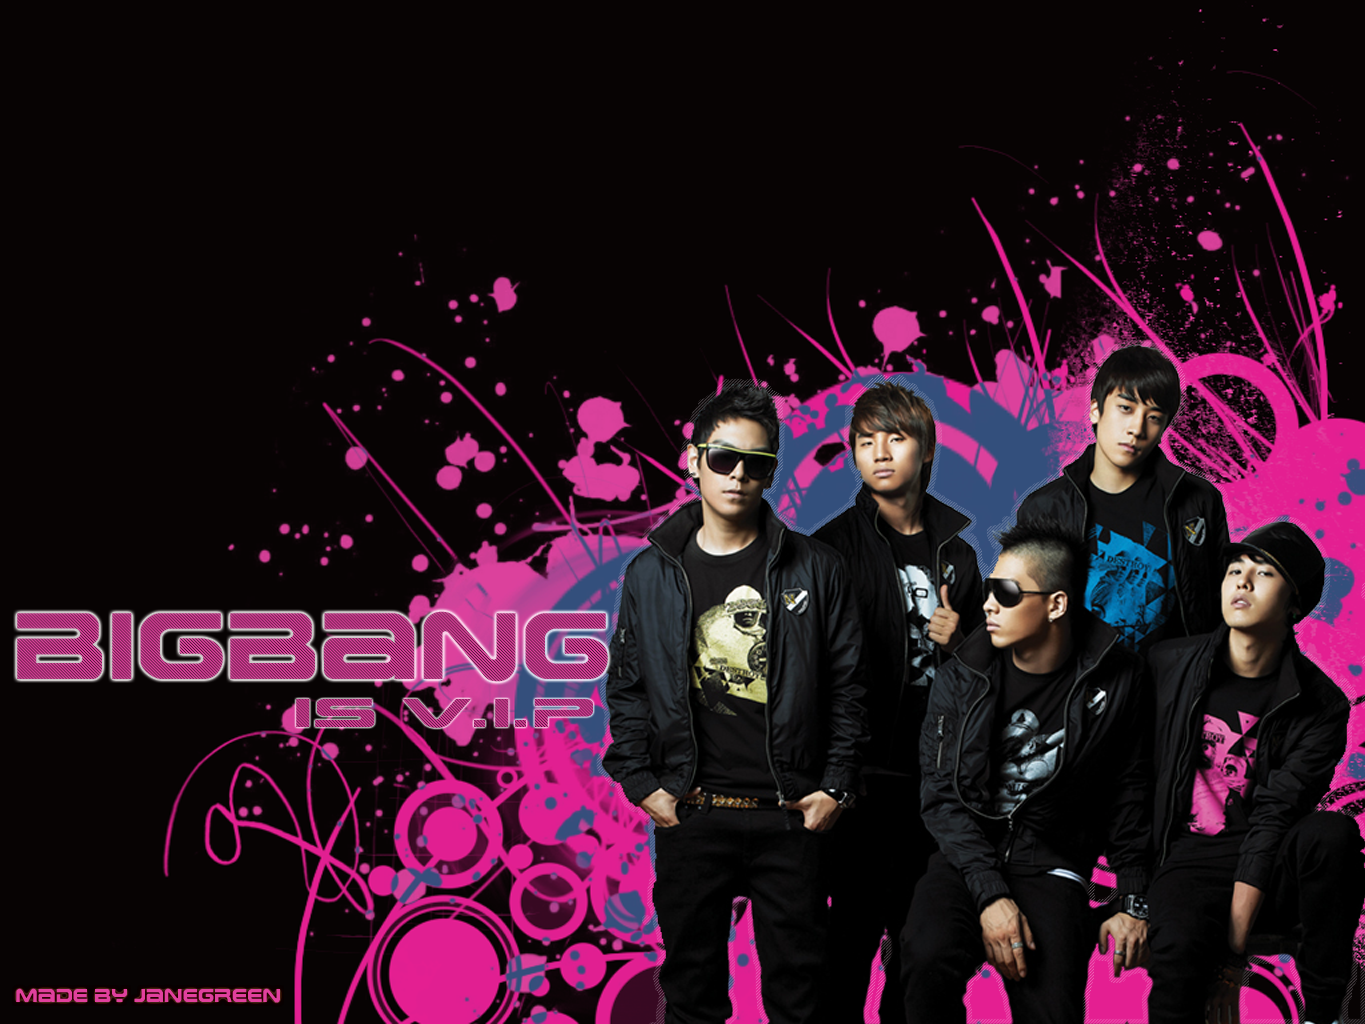 http://3.bp.blogspot.com/-ycR9W42FhNA/Tb1mx1RYGvI/AAAAAAAAACw/p-MV6D9udOA/s1600/Big_Bang_is_VIP_Wallpaper_by_JaneGreen16.png